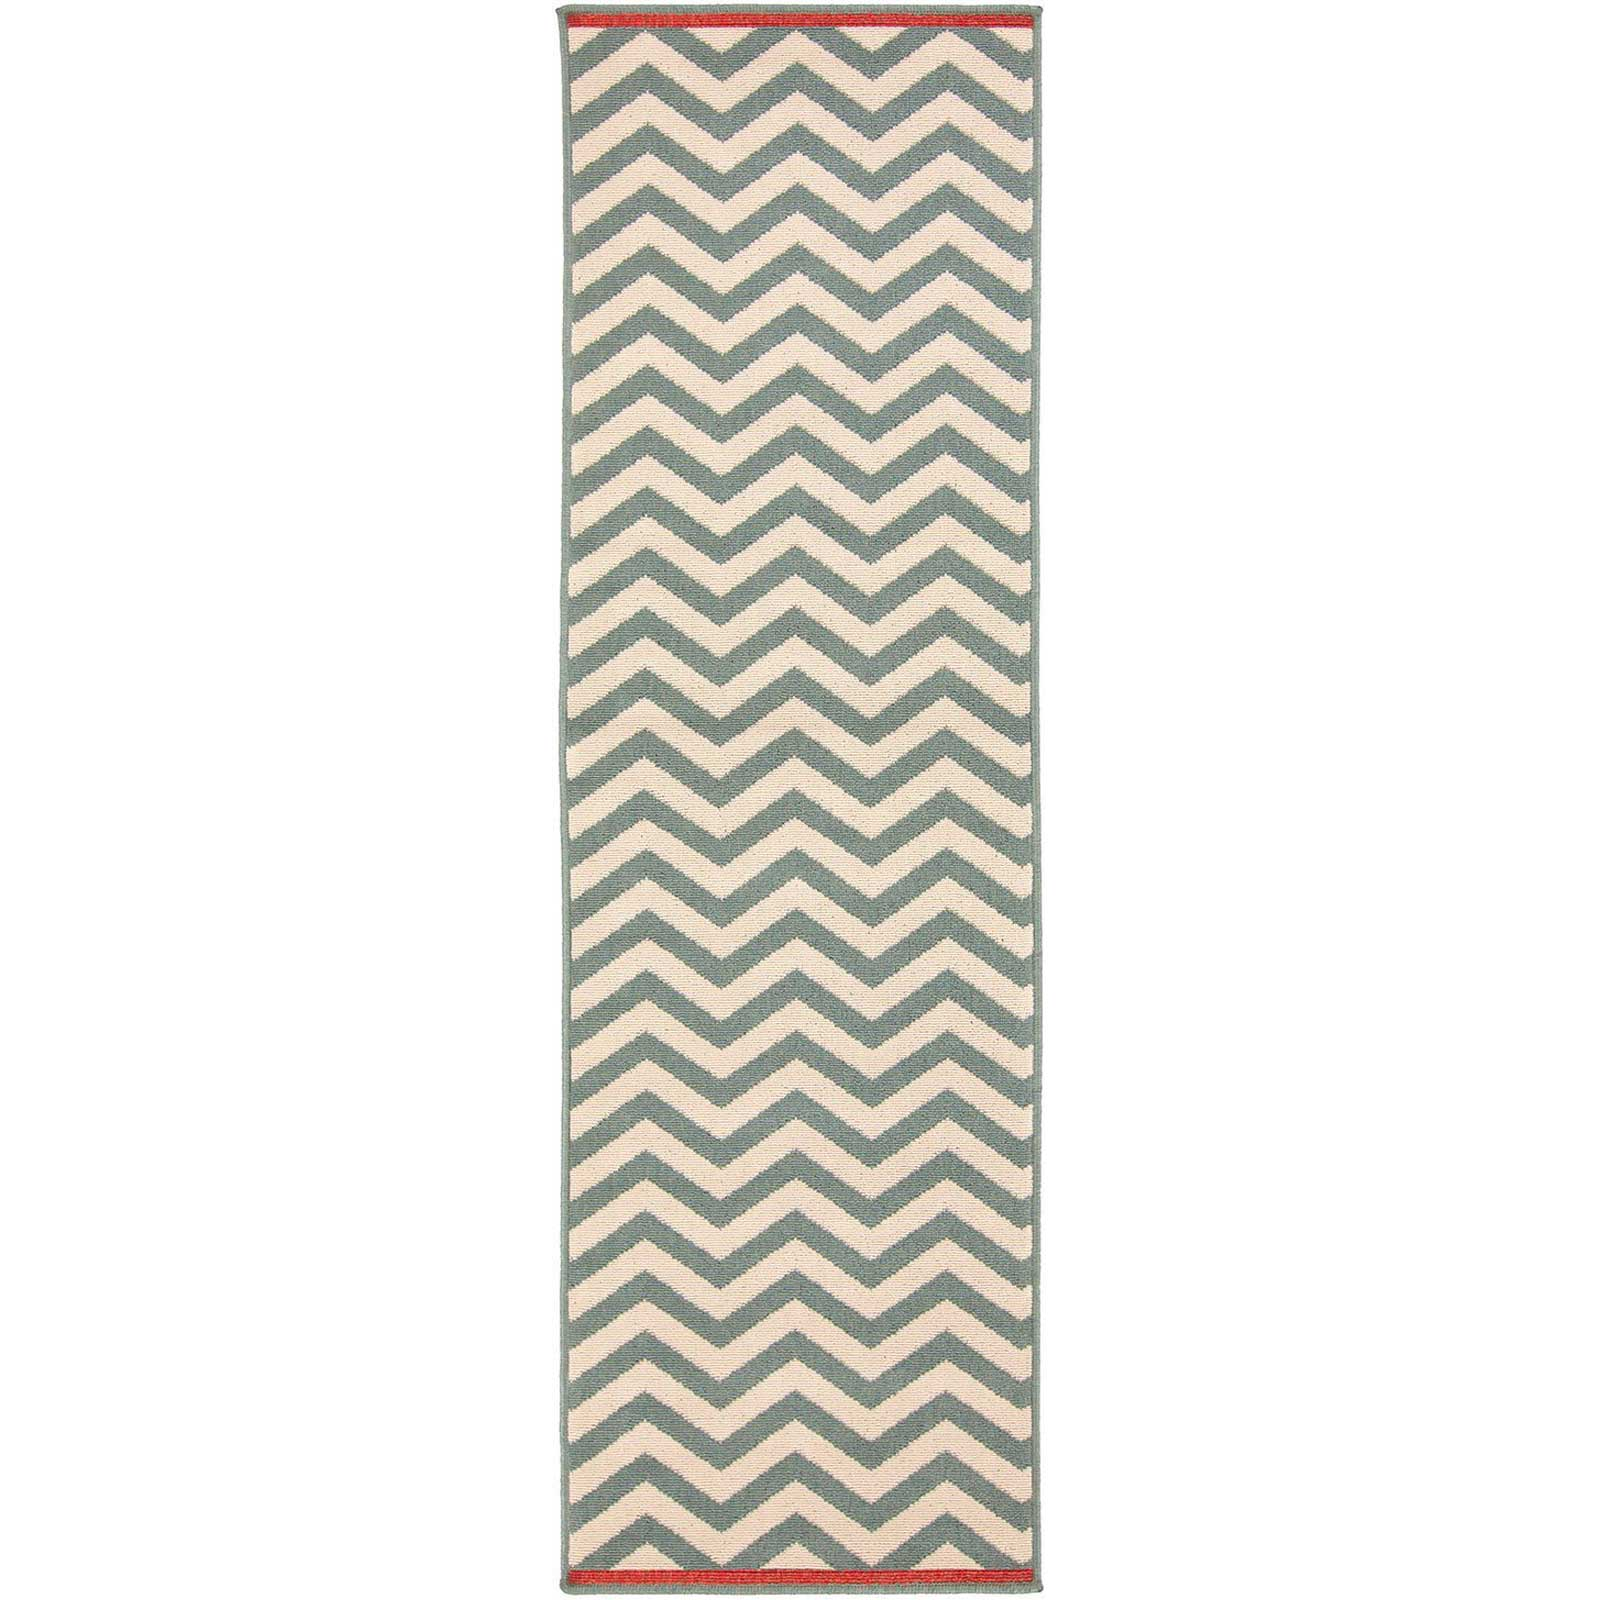 Alfresco Moss/Ivory Runner Rug